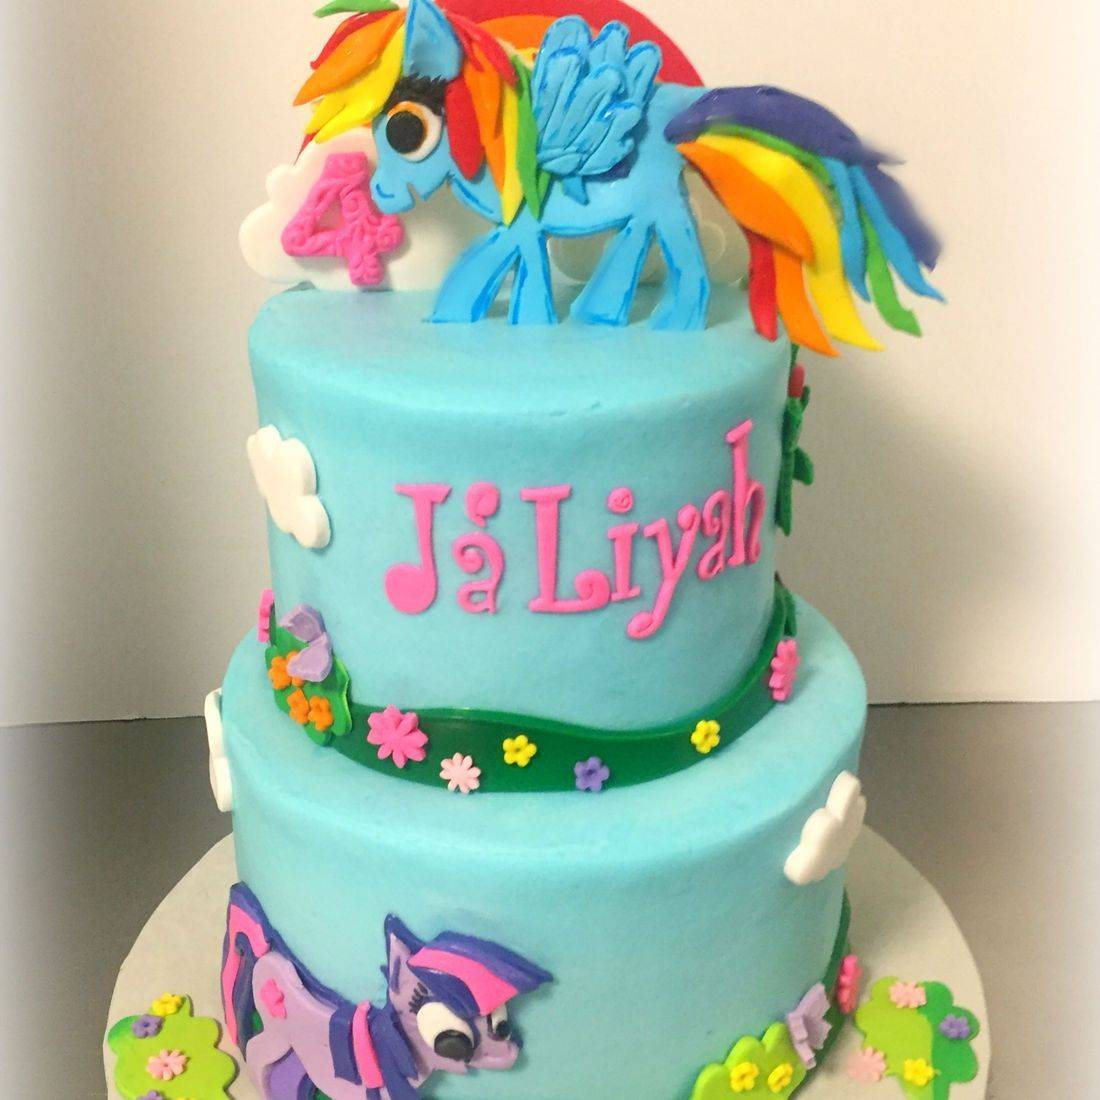 ,y little pony cake rainbow dash cake girls birthday cake